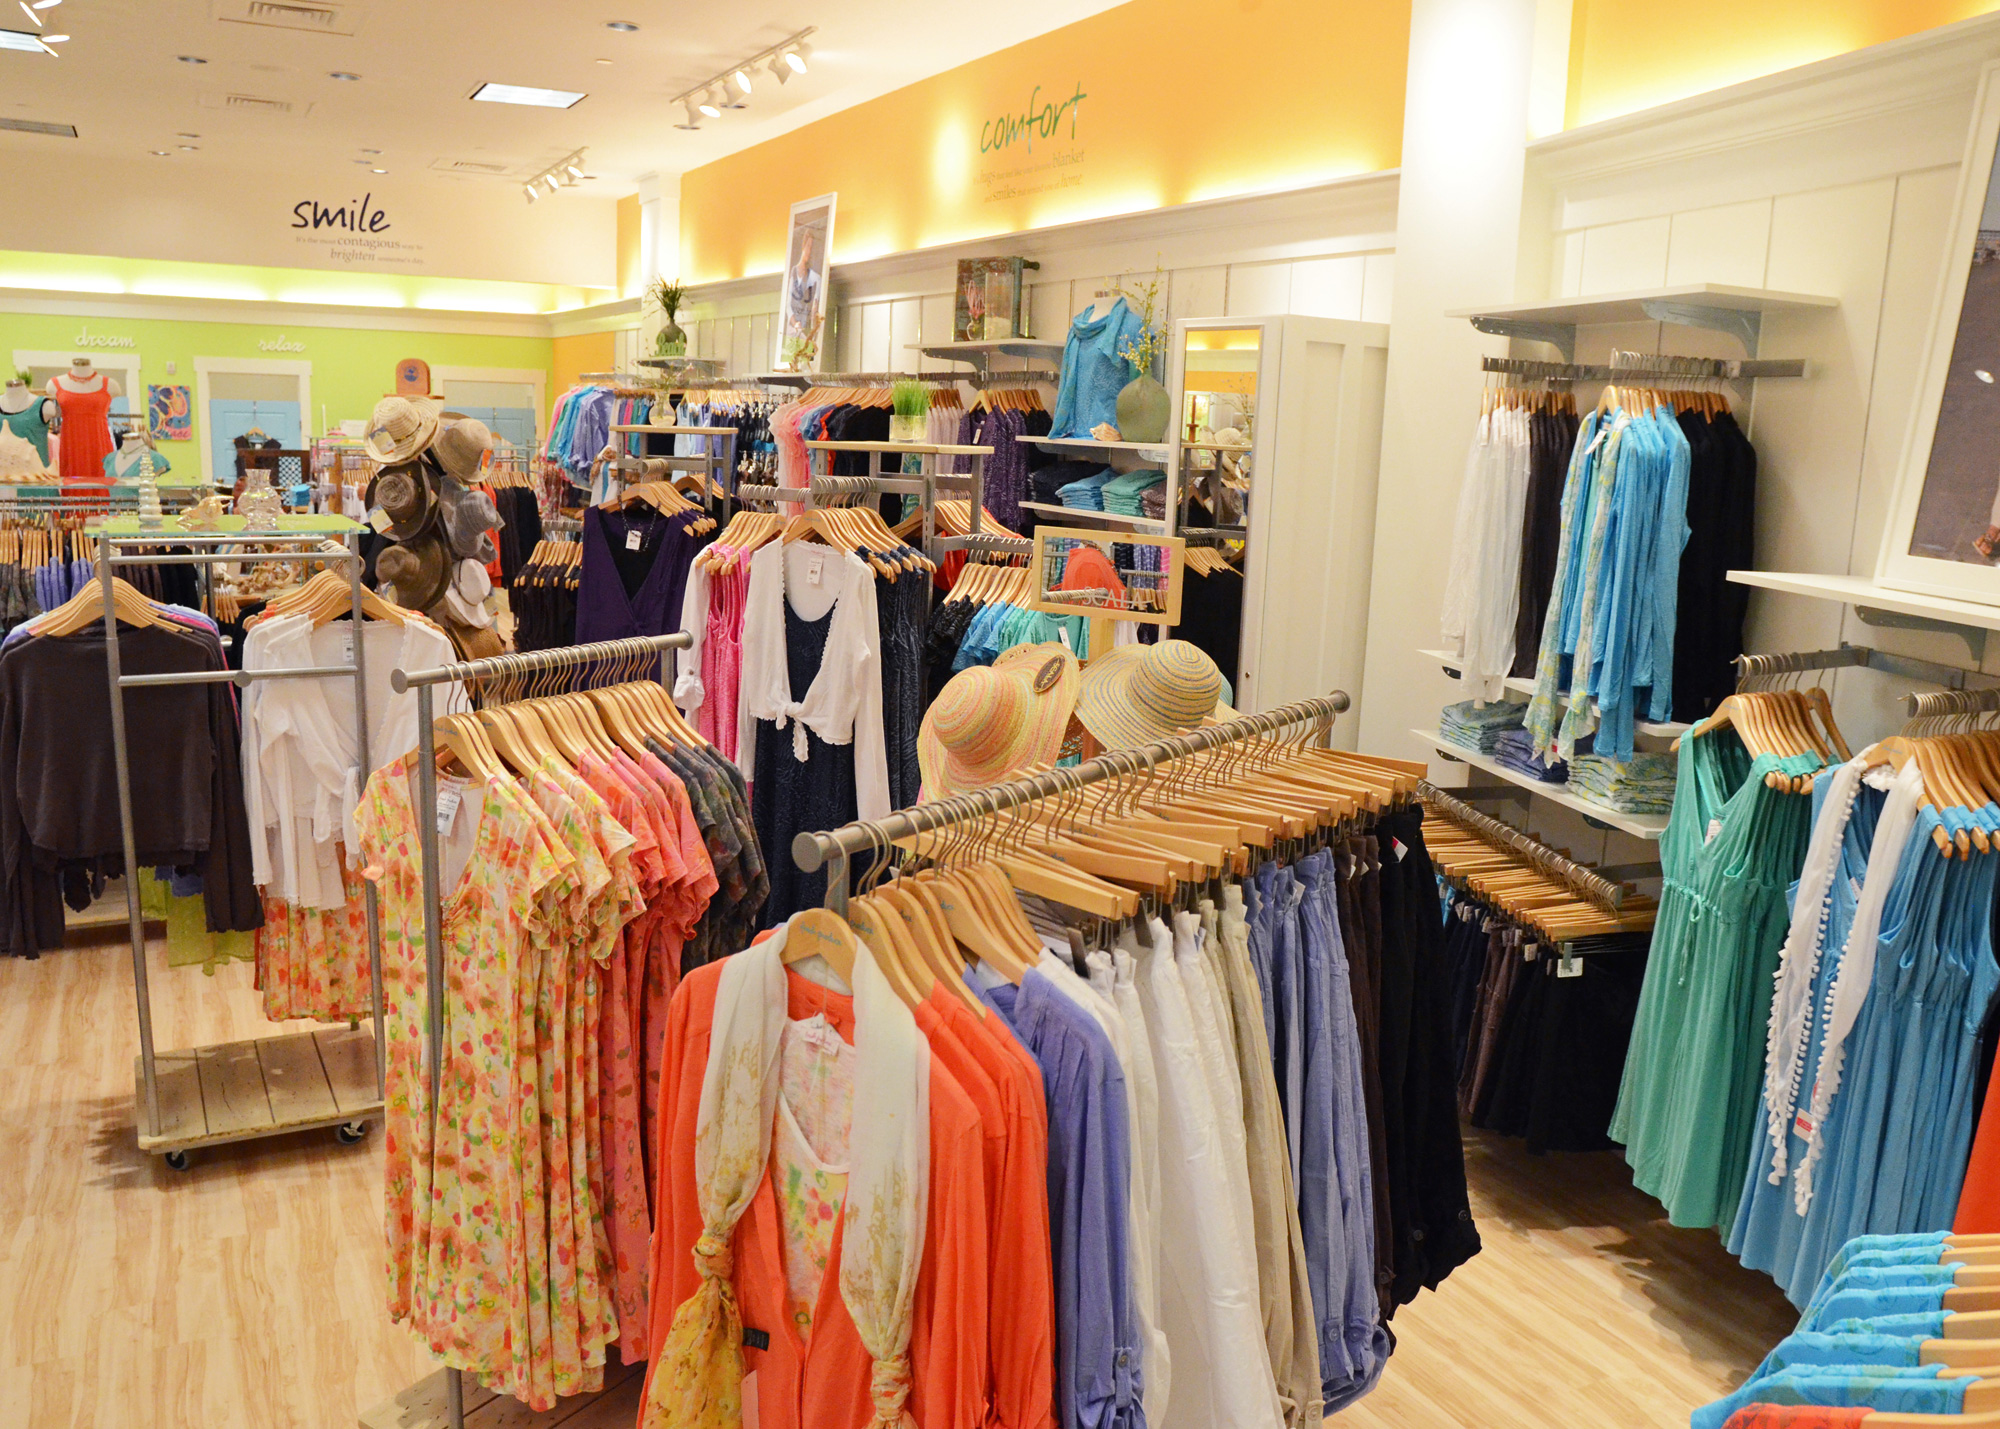 Express has all the style essentials for your closet. Shop Women's Clothing, Shoes, & Accessories now! You're set for any occasion, whether you're going to the workplace or going shopping with friends. With styles ranging from maxi dresses to jeans to women's tops, we have what you're looking for!